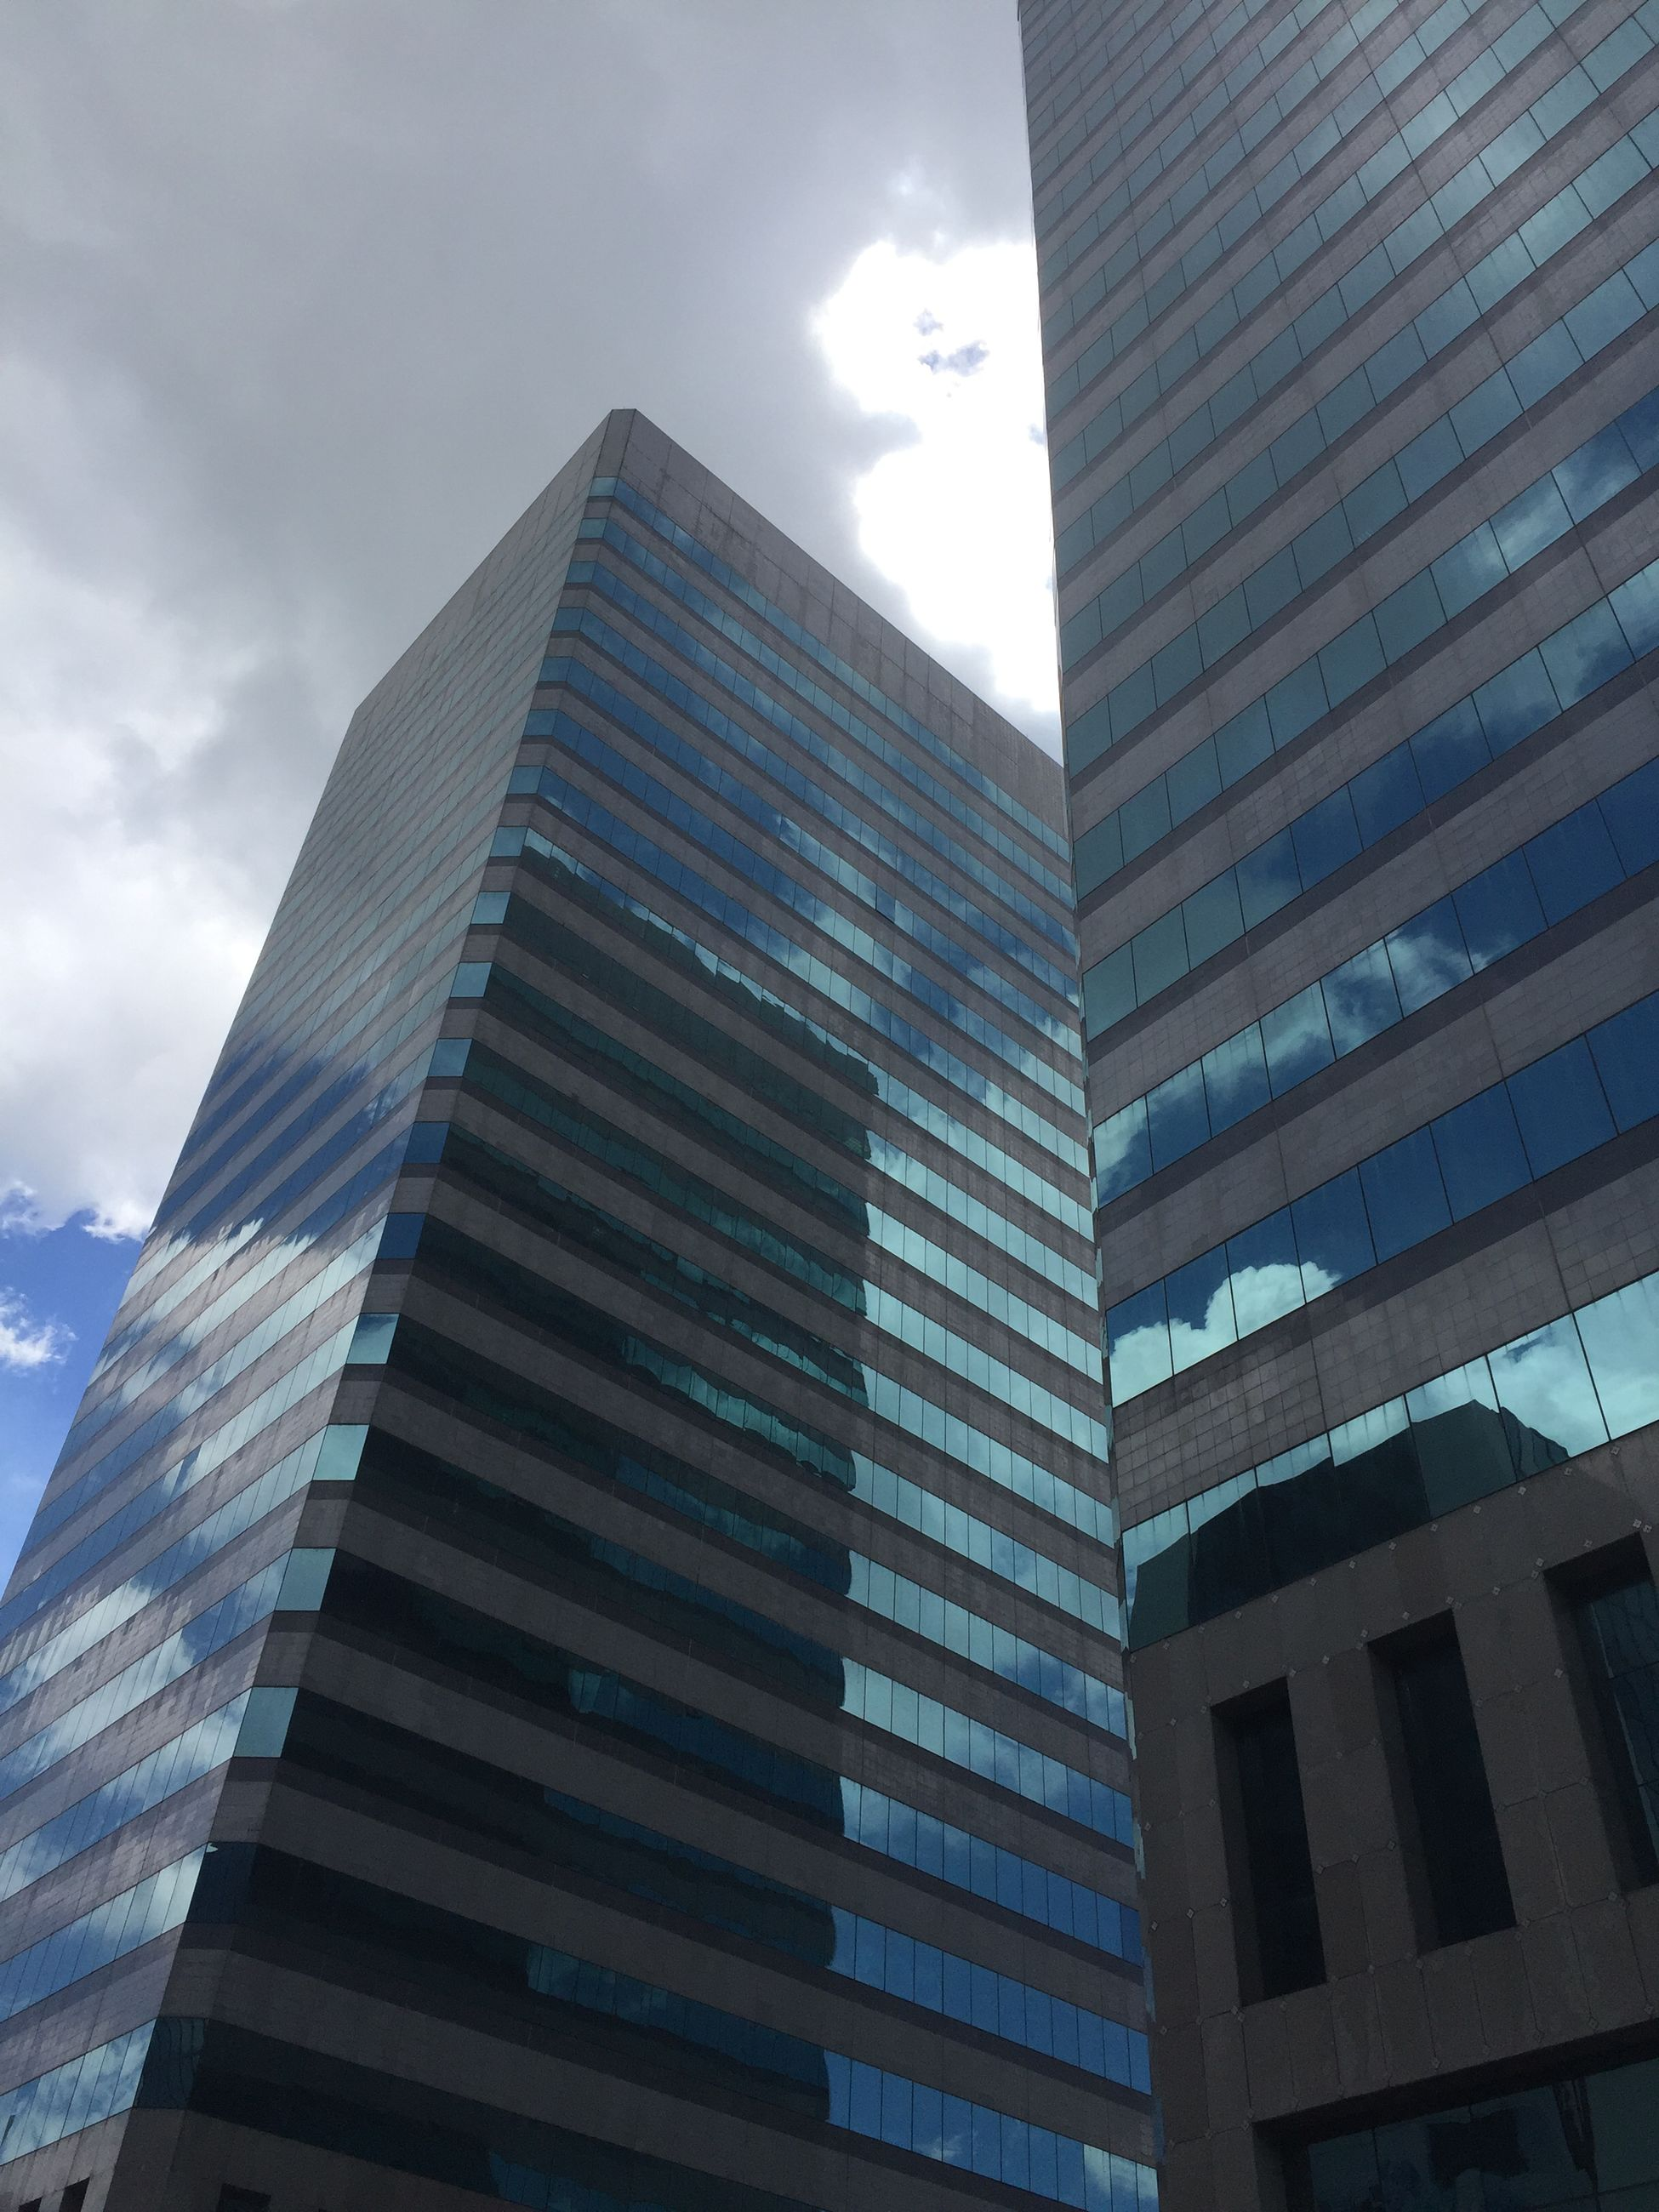 architecture, built structure, building exterior, low angle view, reflection, modern, office building, sky, city, building, skyscraper, glass - material, tall - high, cloud - sky, tower, day, sunlight, outdoors, no people, directly below